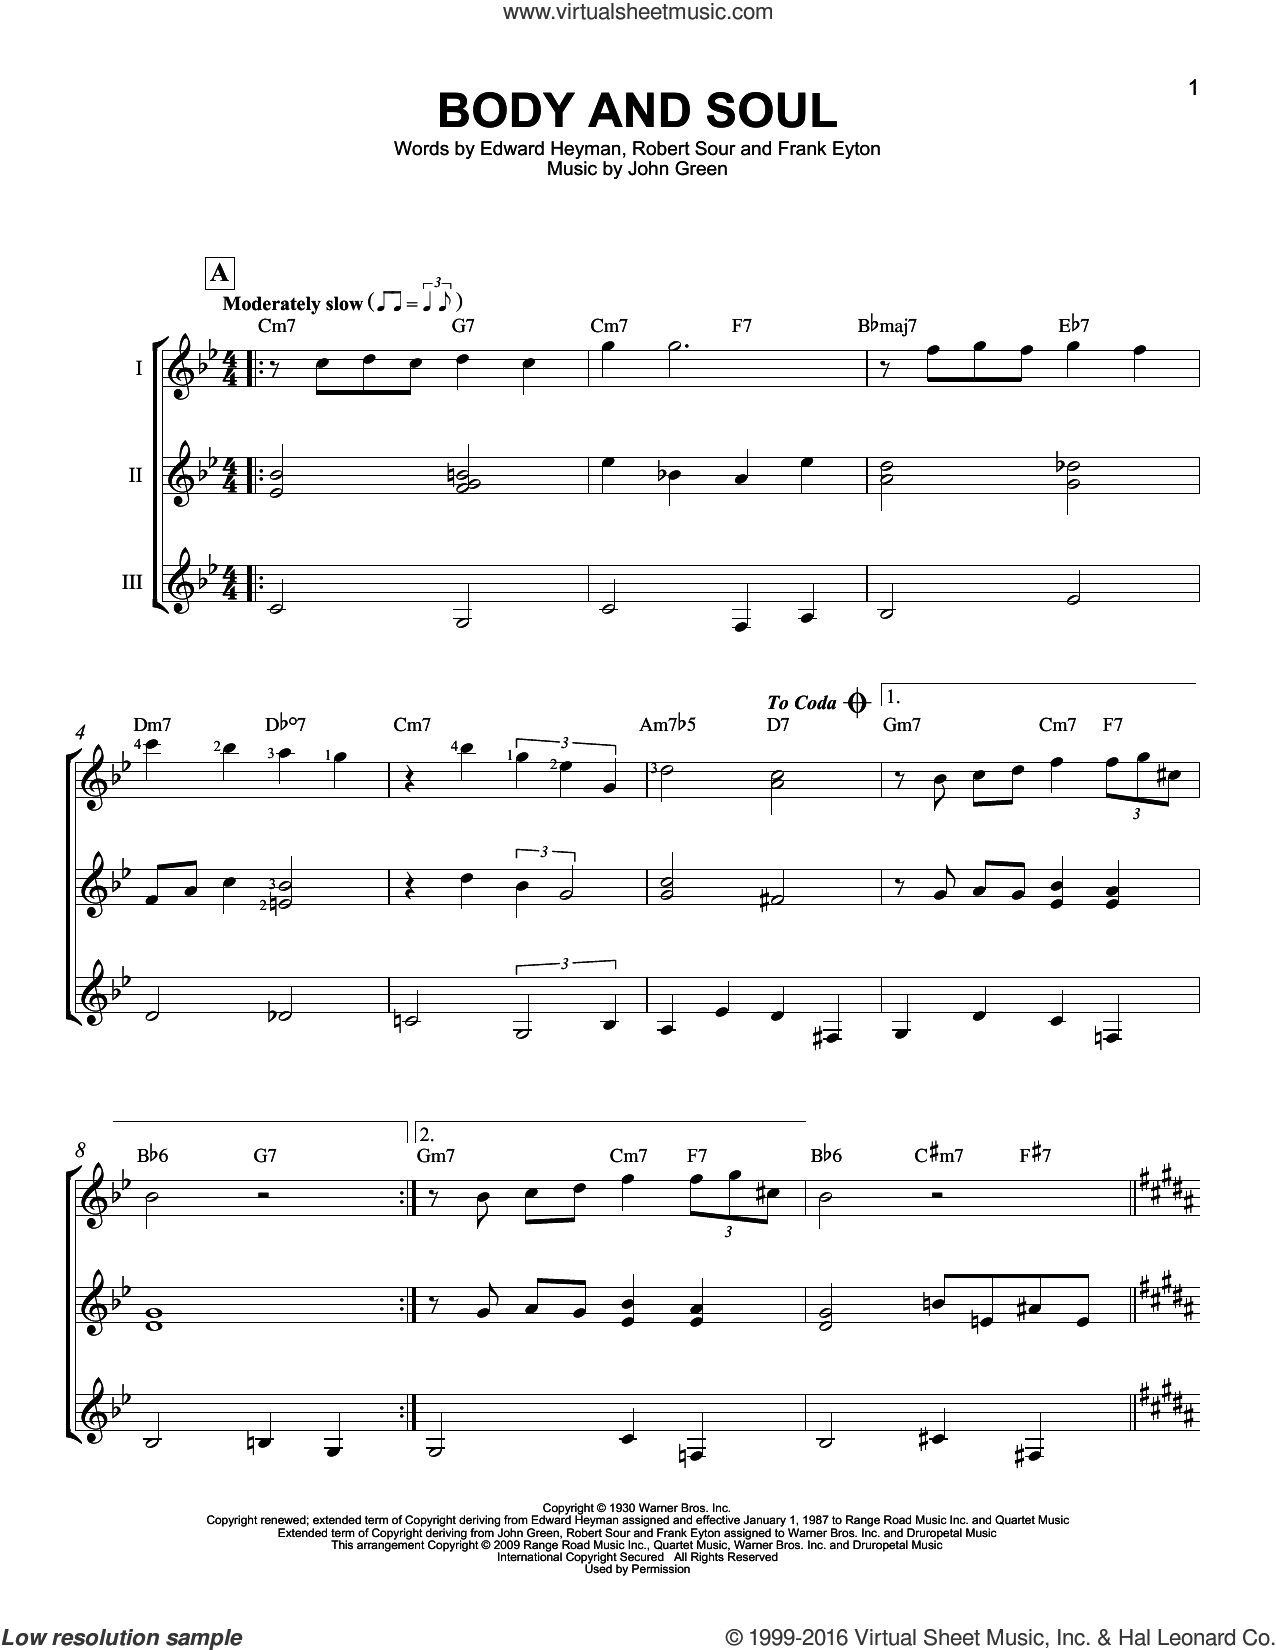 Body And Soul sheet music for guitar ensemble by Johnny Green, Tony Bennett & Amy Winehouse, Edward Heyman, Frank Eyton and Robert Sour, intermediate guitar ensemble. Score Image Preview.